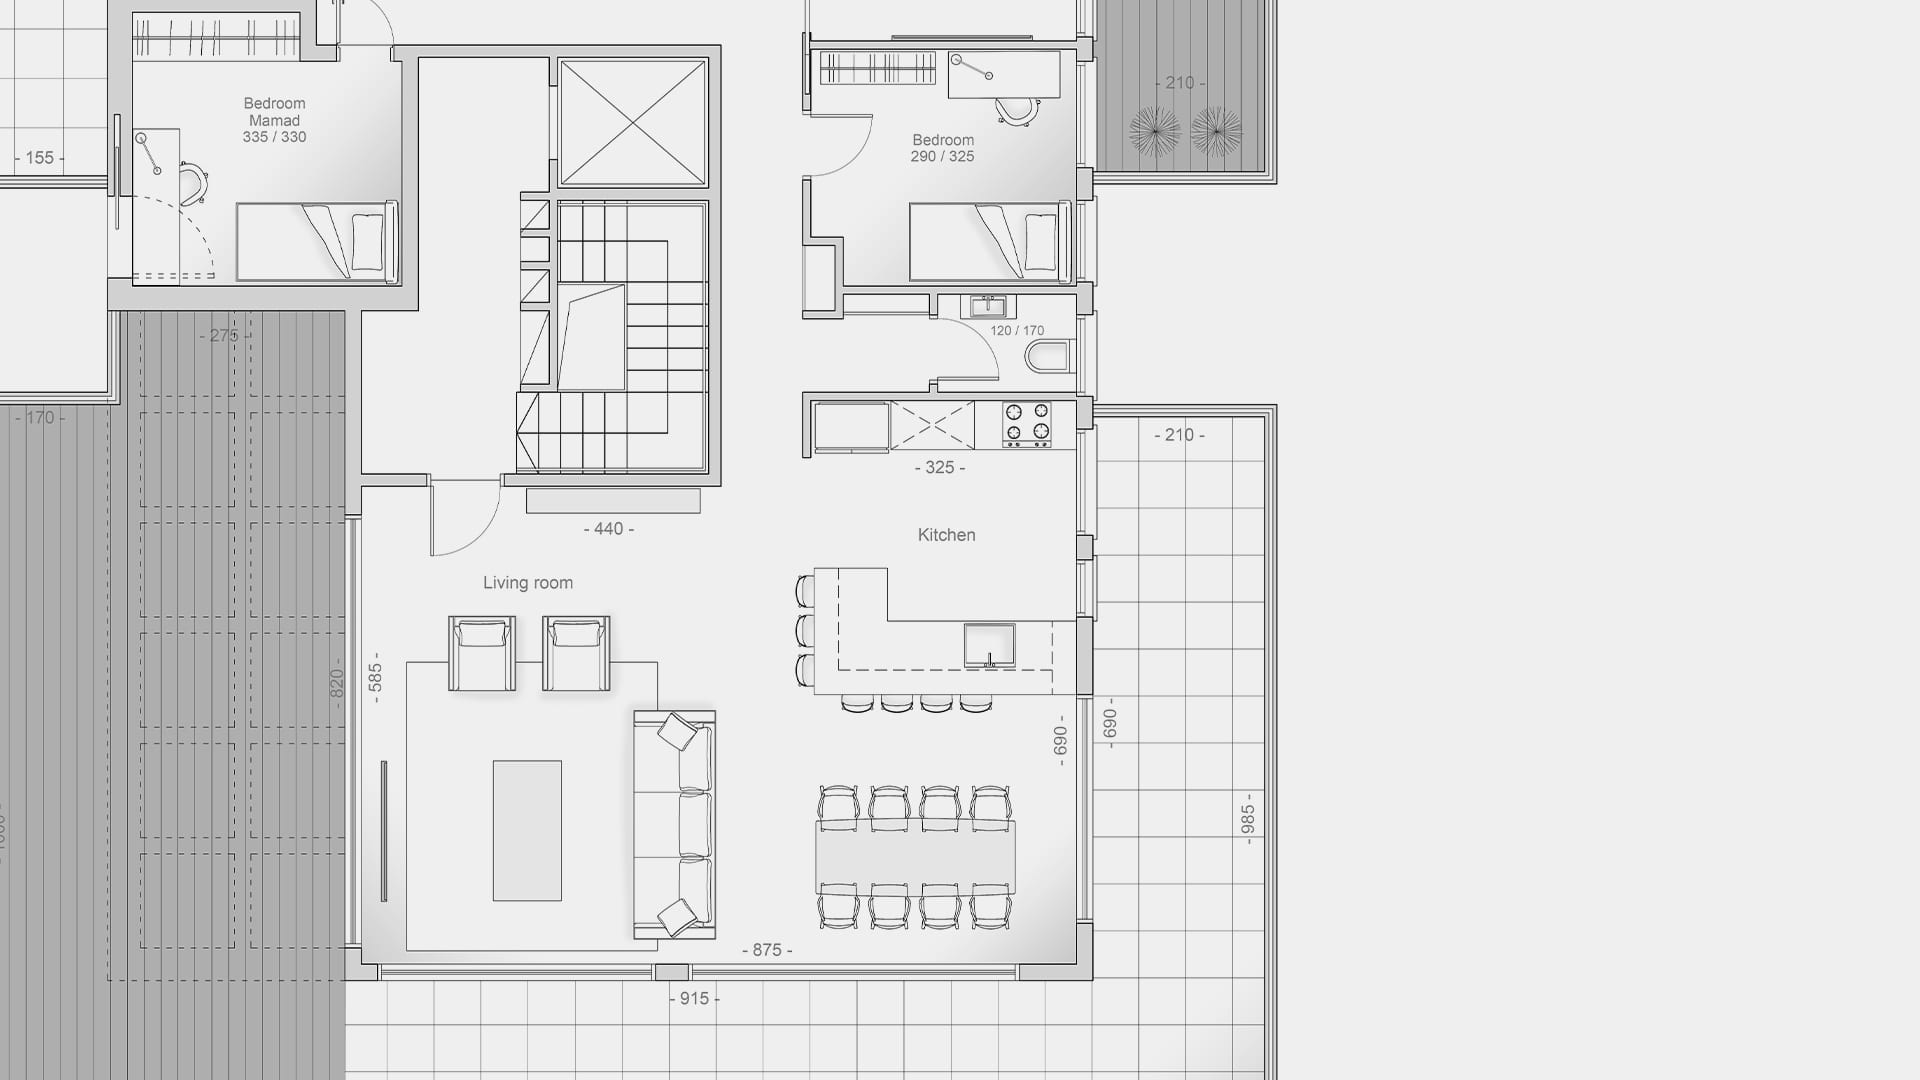 Maayan-Golan_Architectural-Visualization_2D-floor-plan_penthouse-apartment